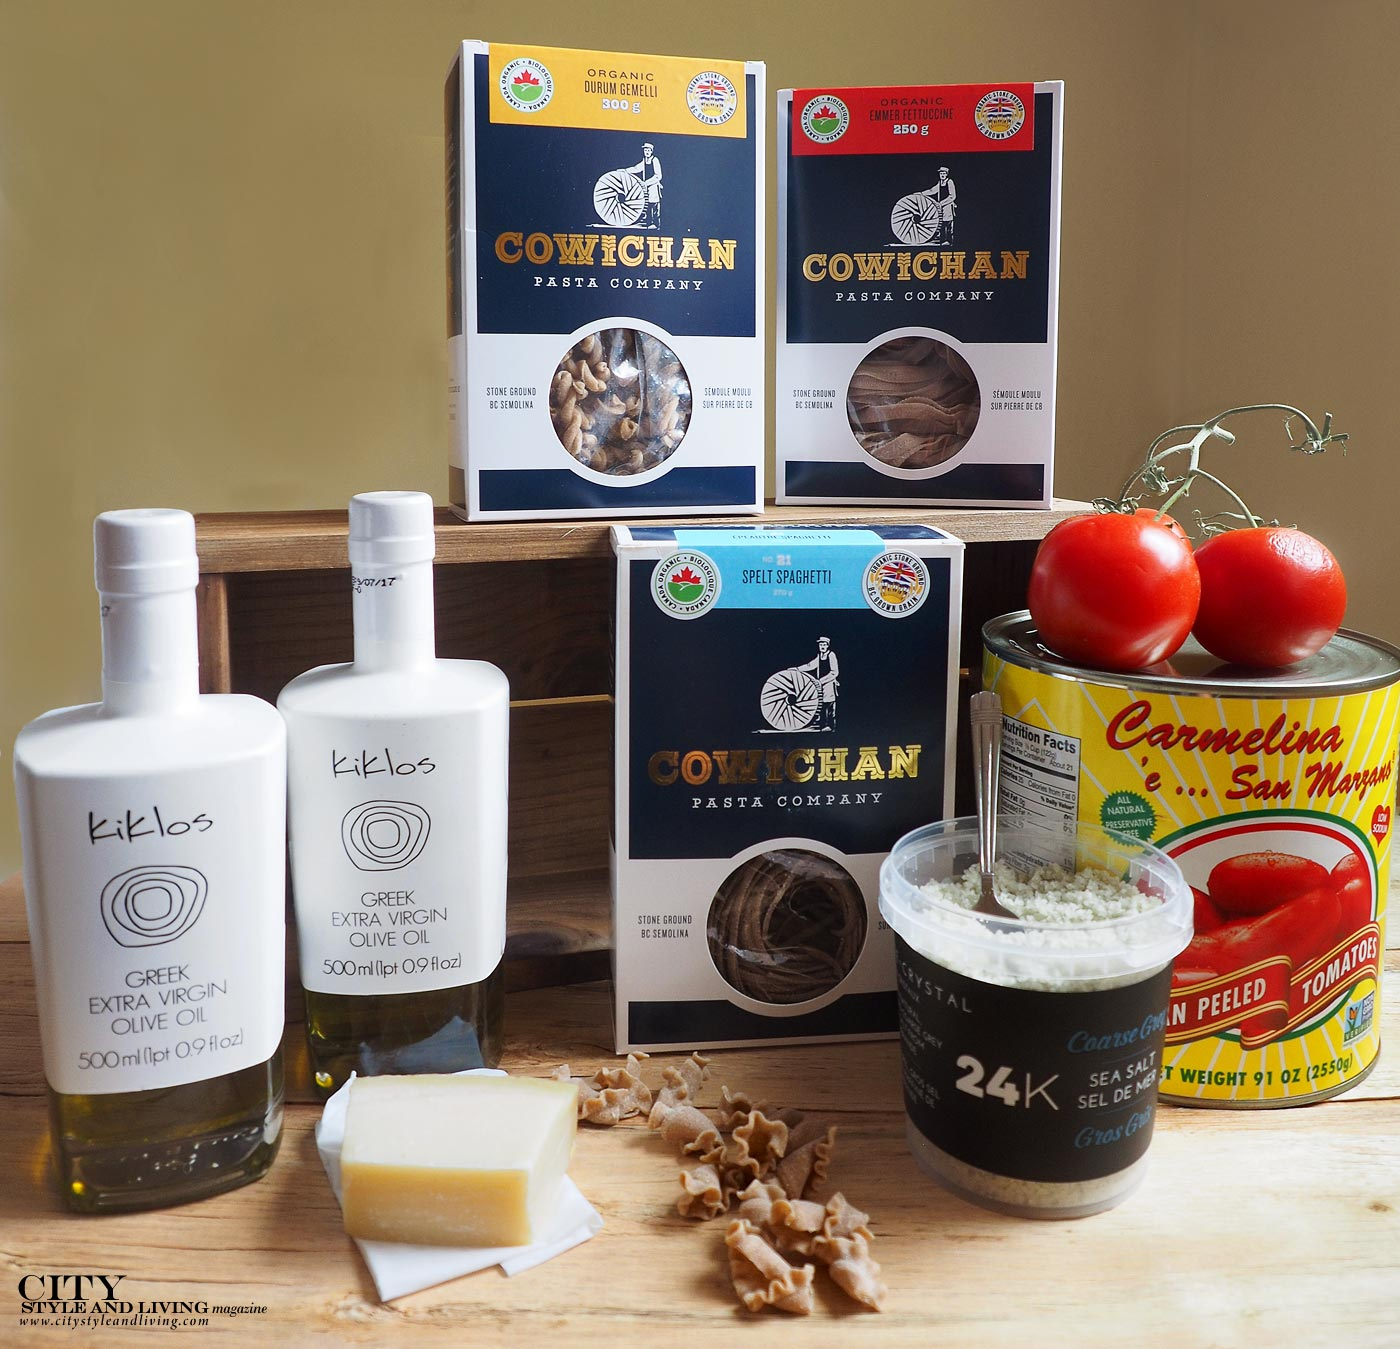 City Style and Living Magazine The Italian Pantry Mediterranean diet